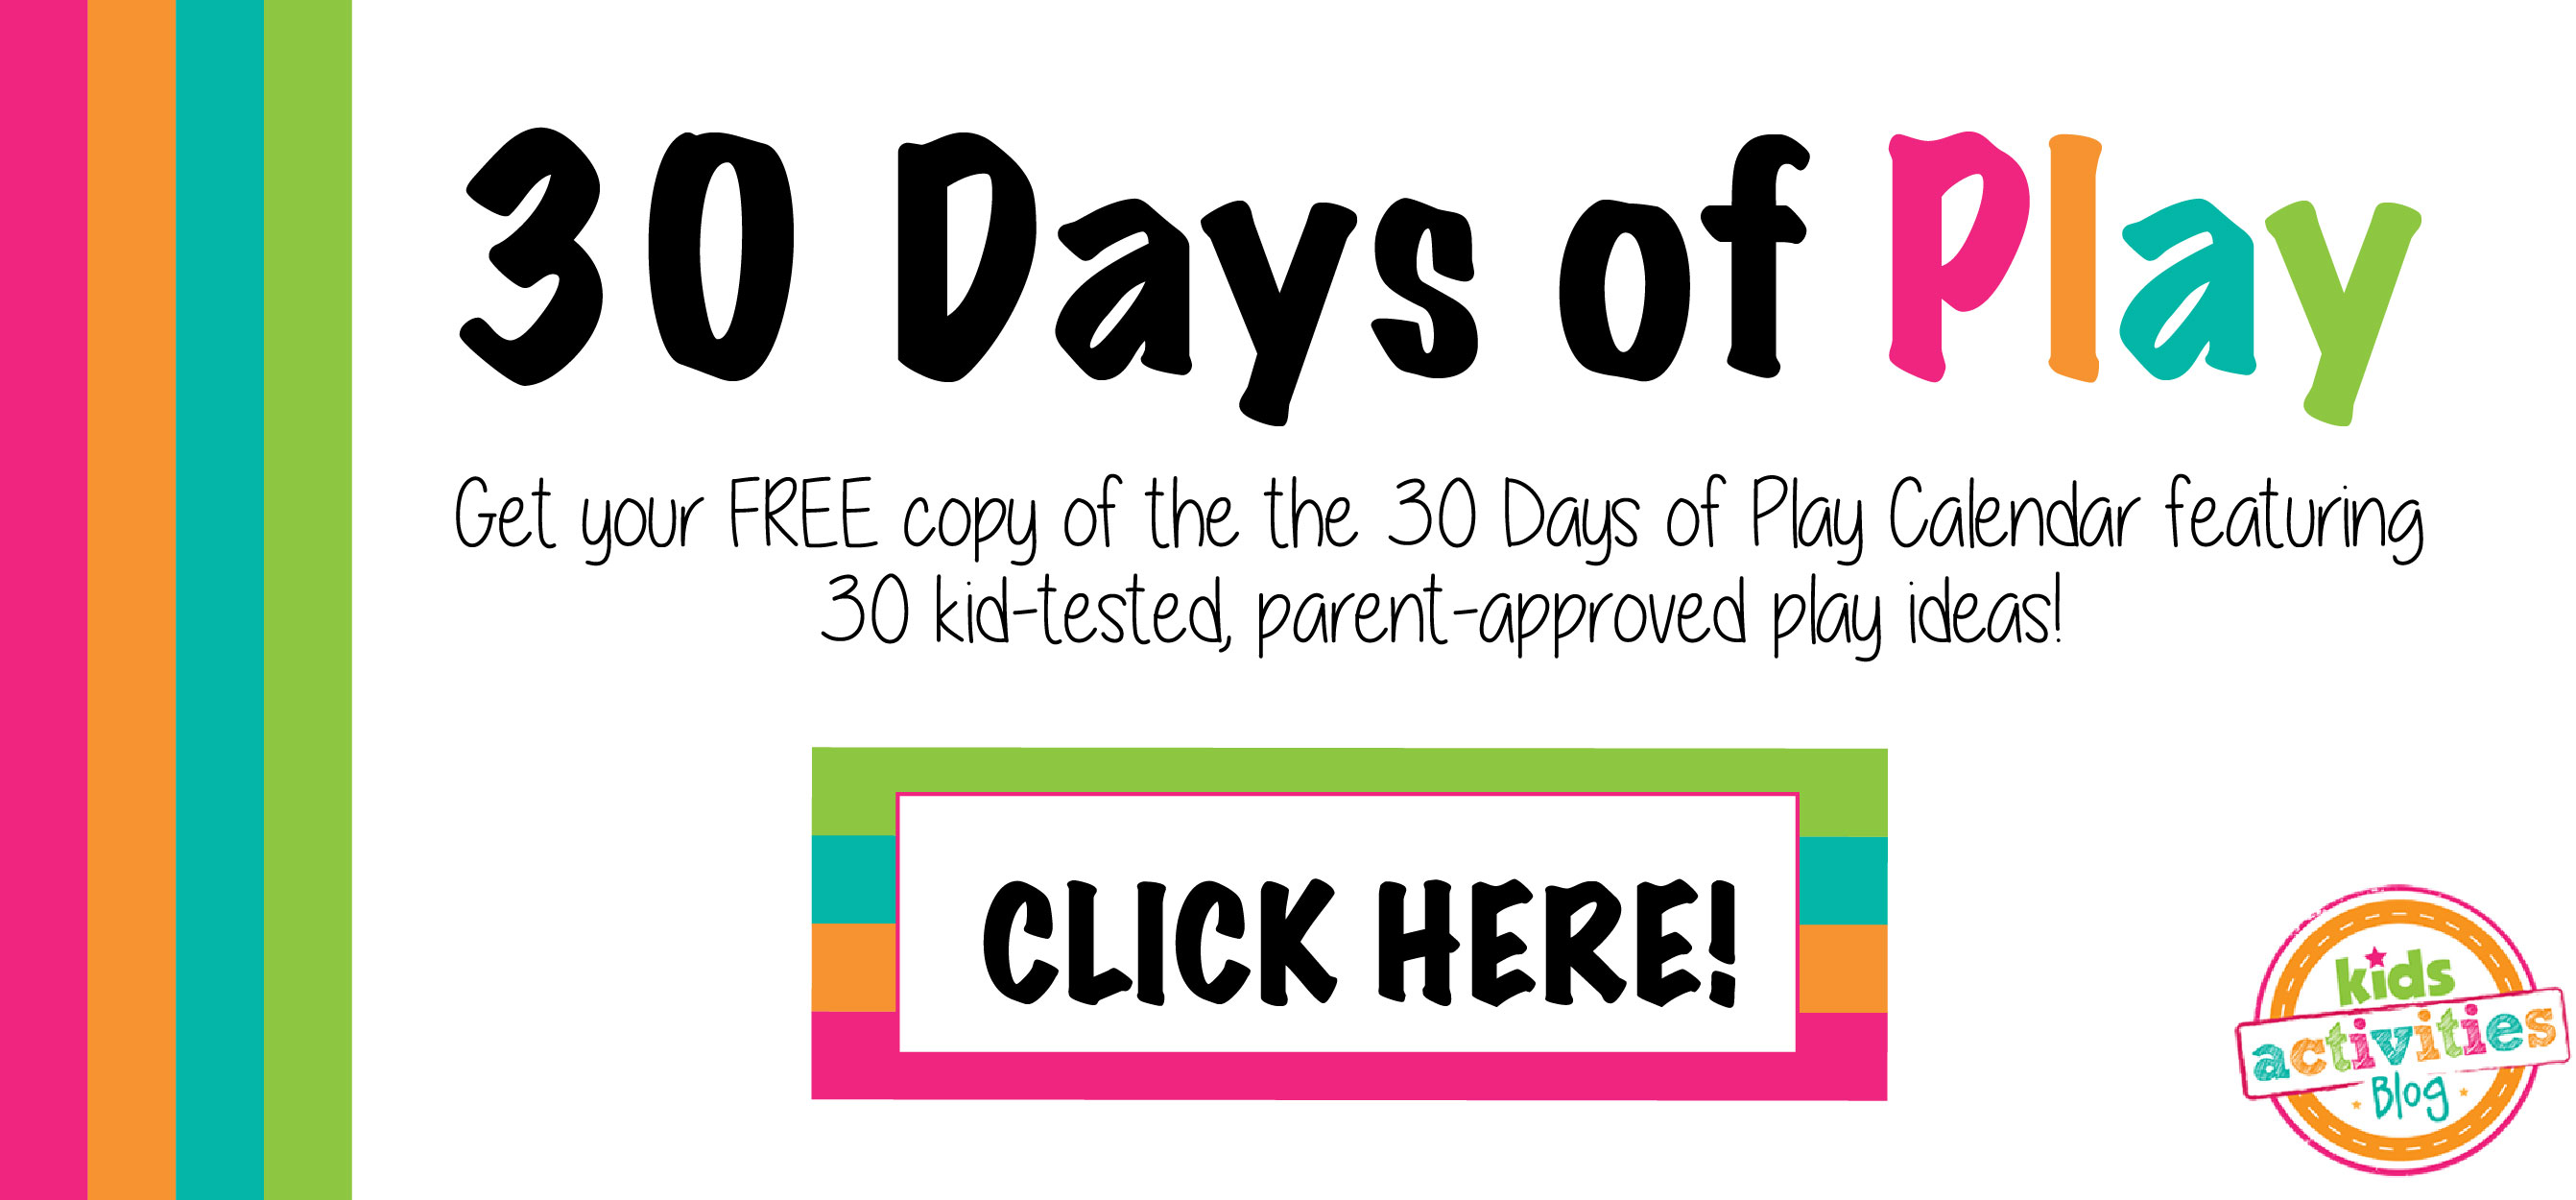 Subscribe Here to get the 30 Days of Play Calendar!